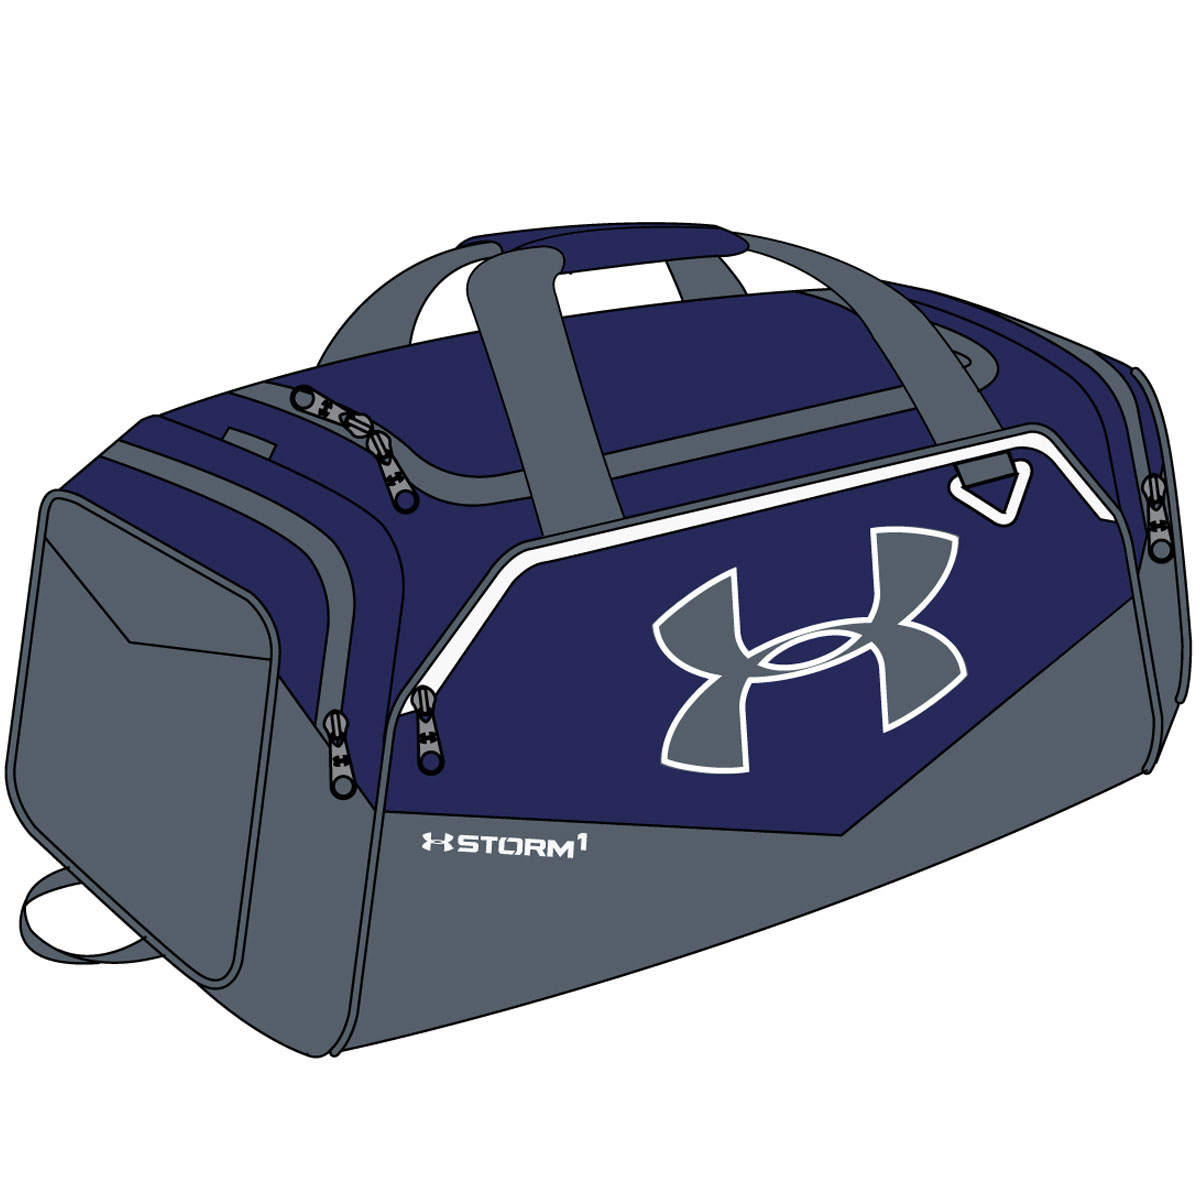 Cartoon Duffel Bag Pictures to Pin on Pinterest